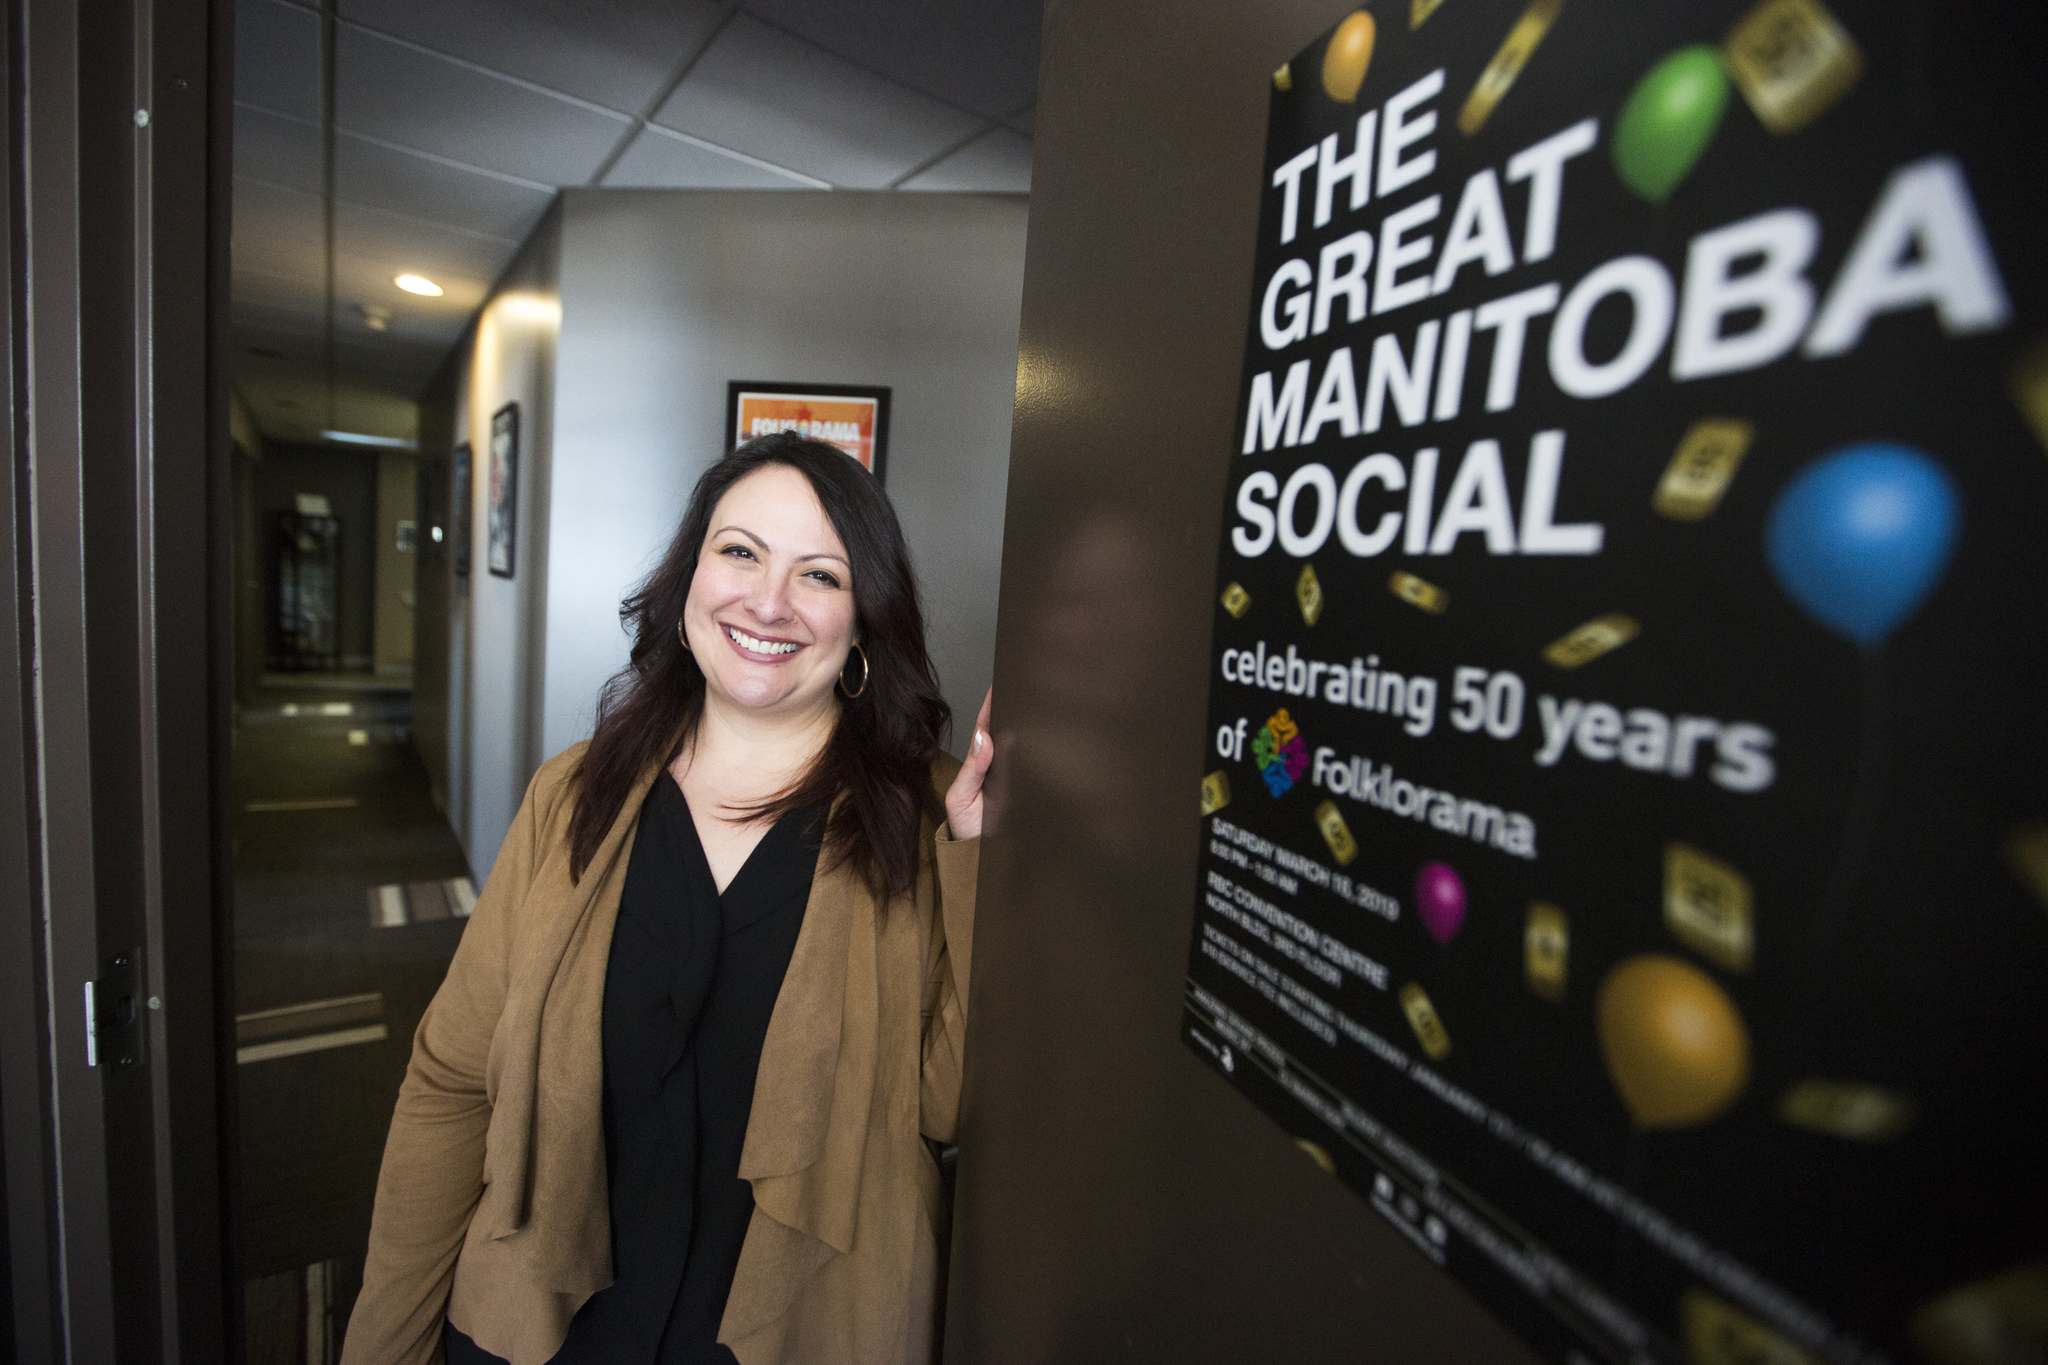 Teresa Cotroneo, Folklorama's executive director, said the social idea was hatched as an accessible way to bring everyone together. (Mikaela Mackenzie / Winnipeg Free Press)